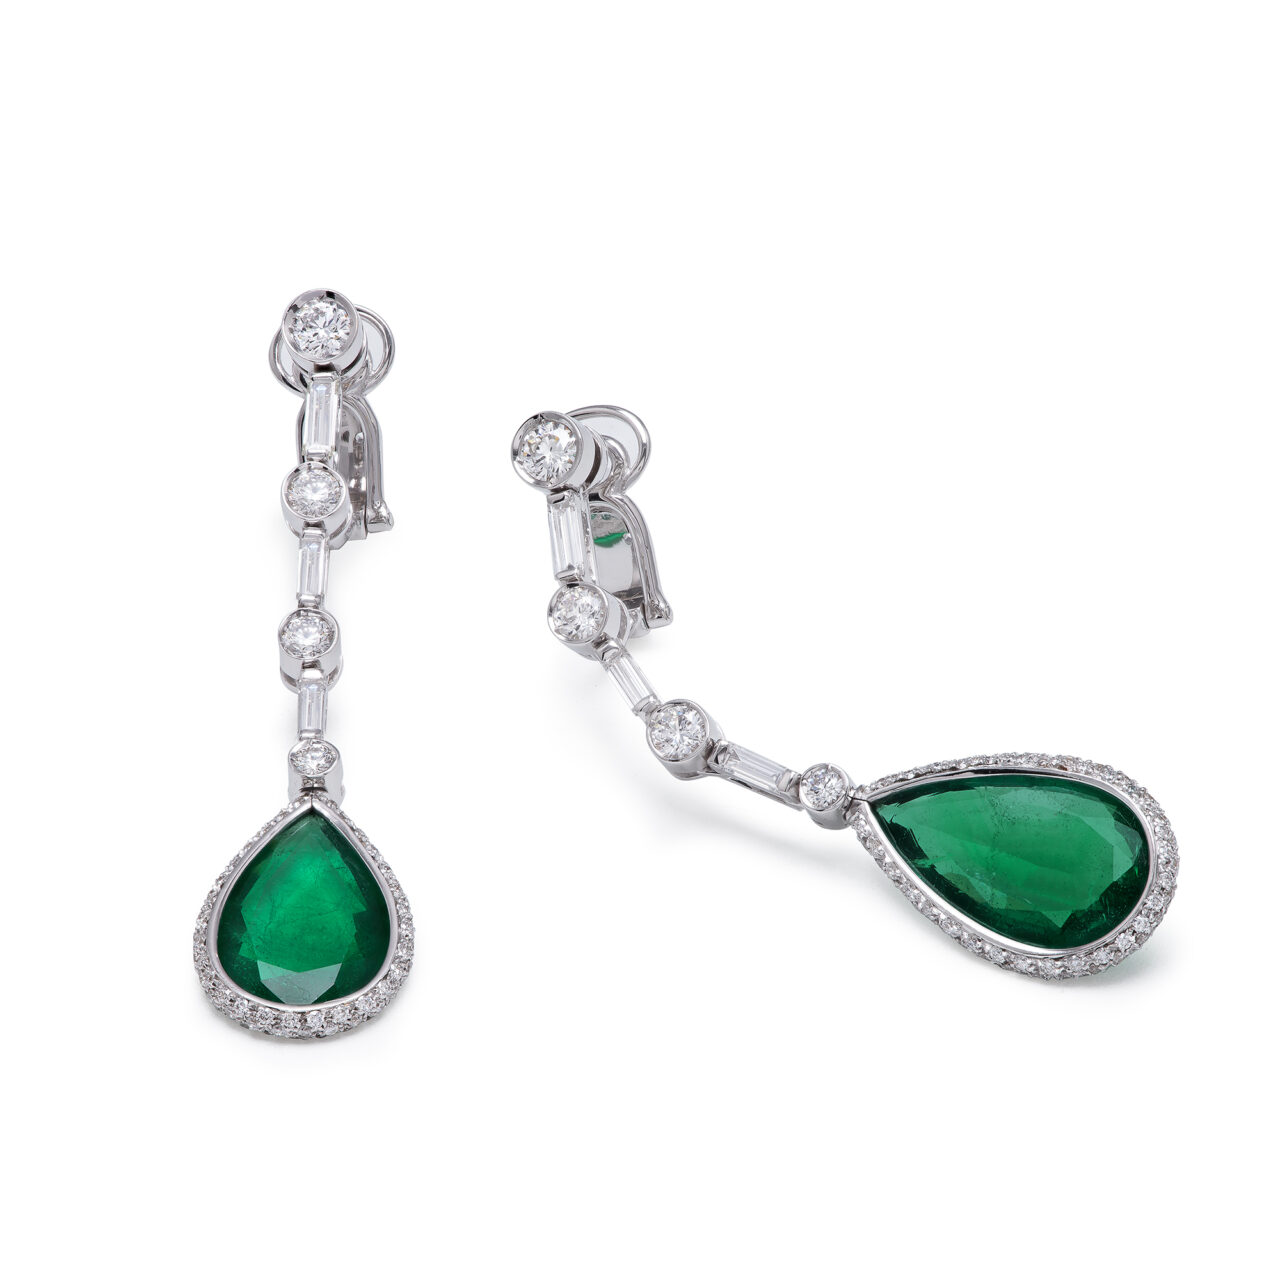 White gold earrings with diamonds and zambian emeralds